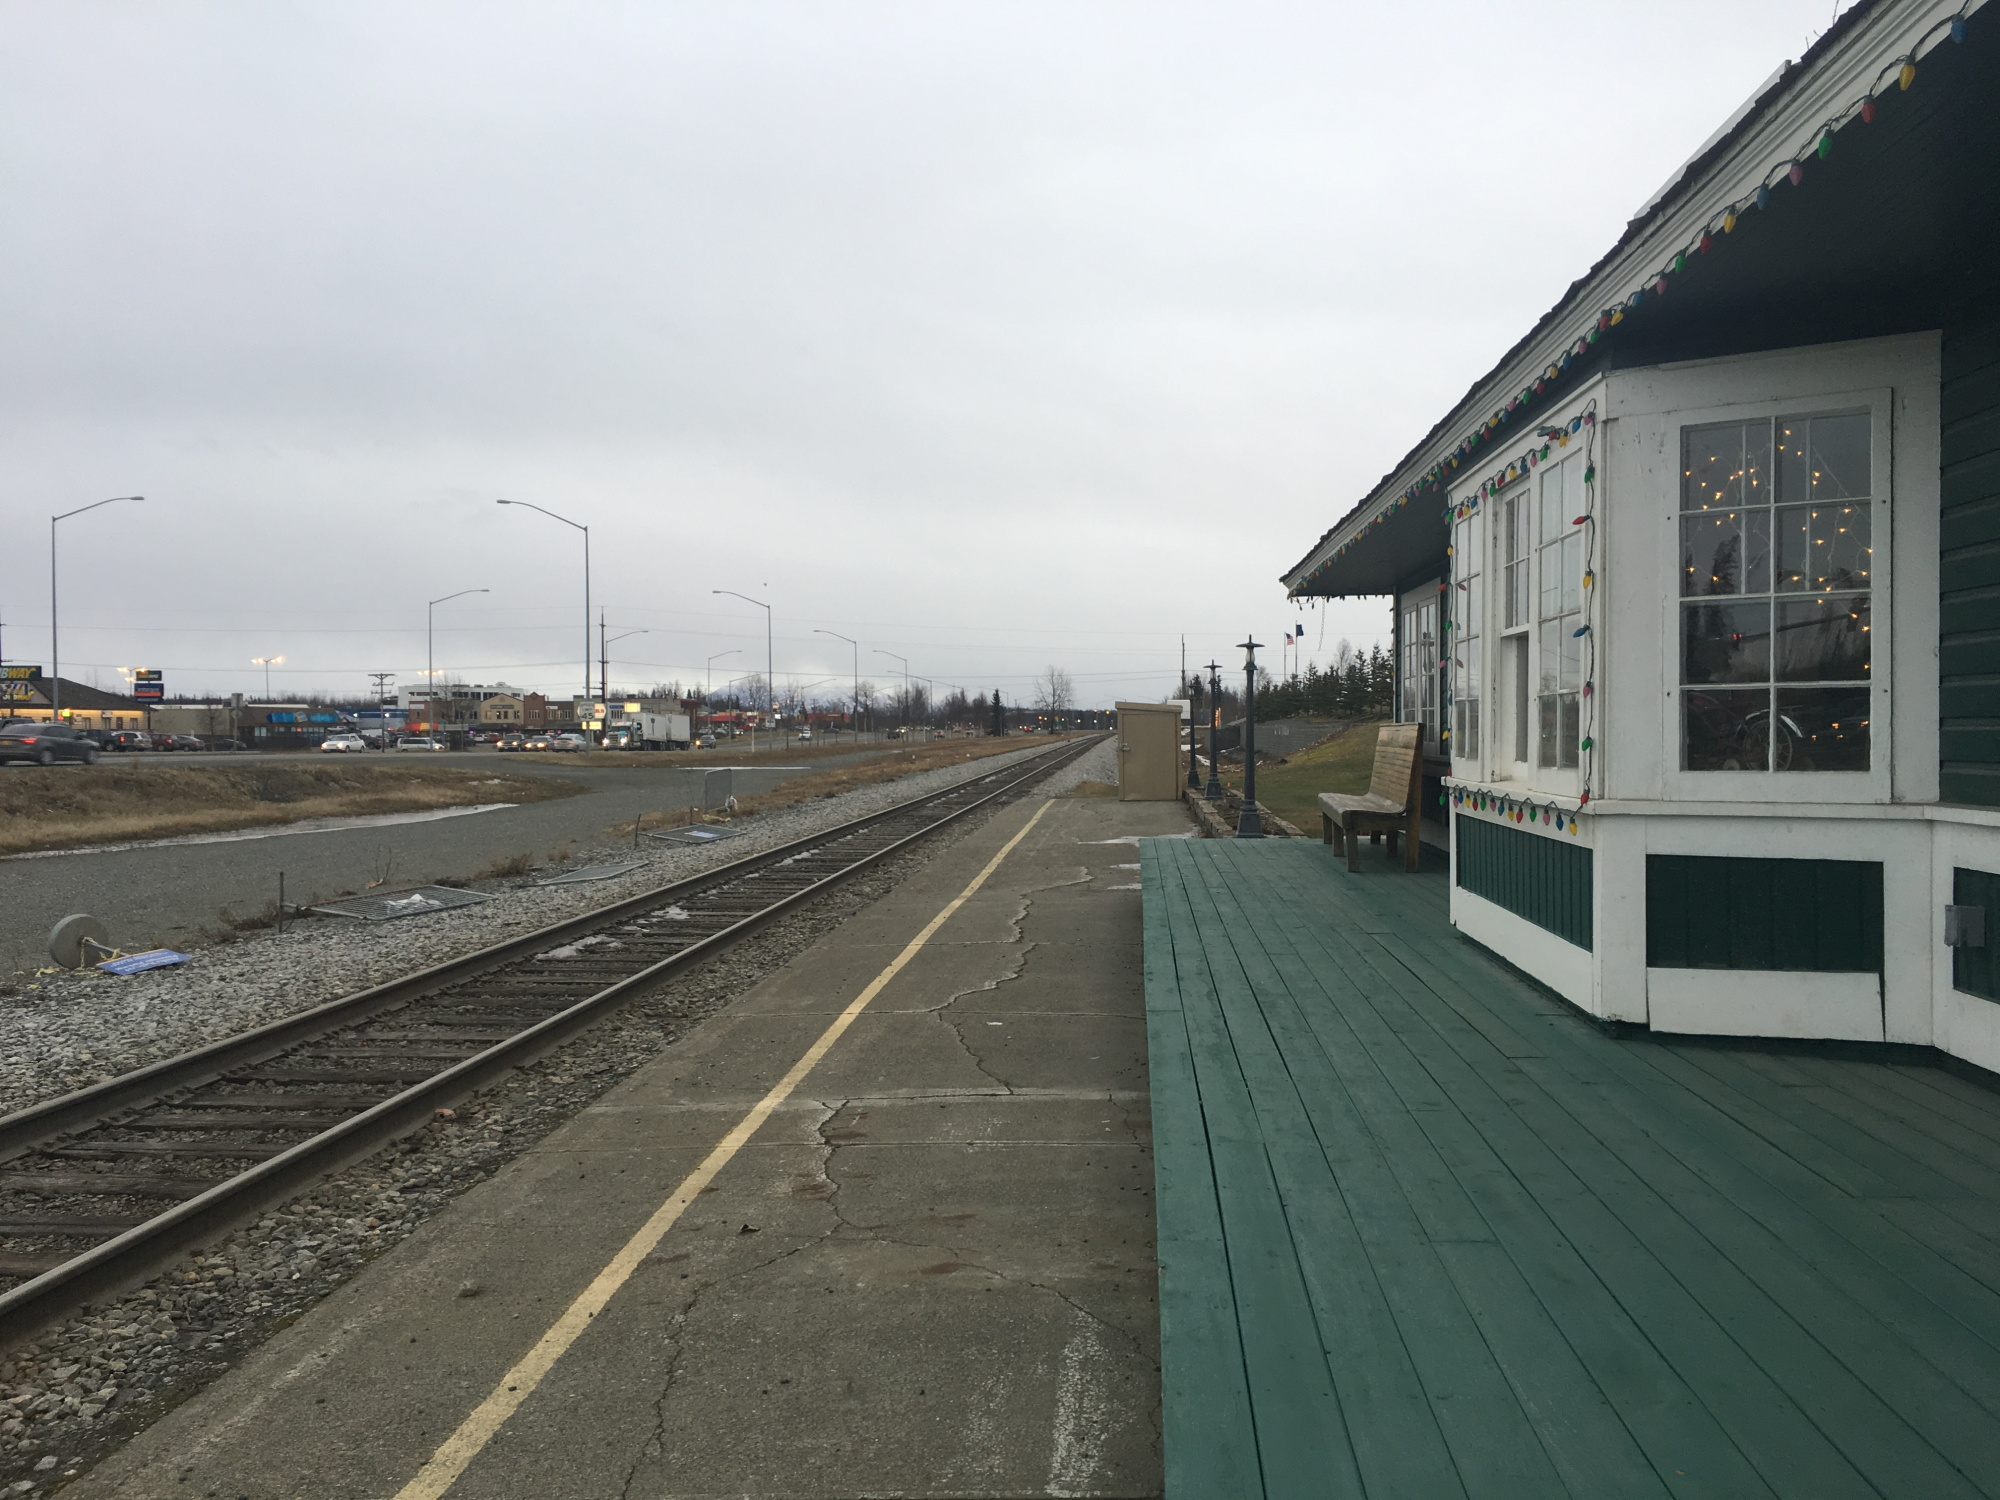 Wasilla Depot 100 years after construction.